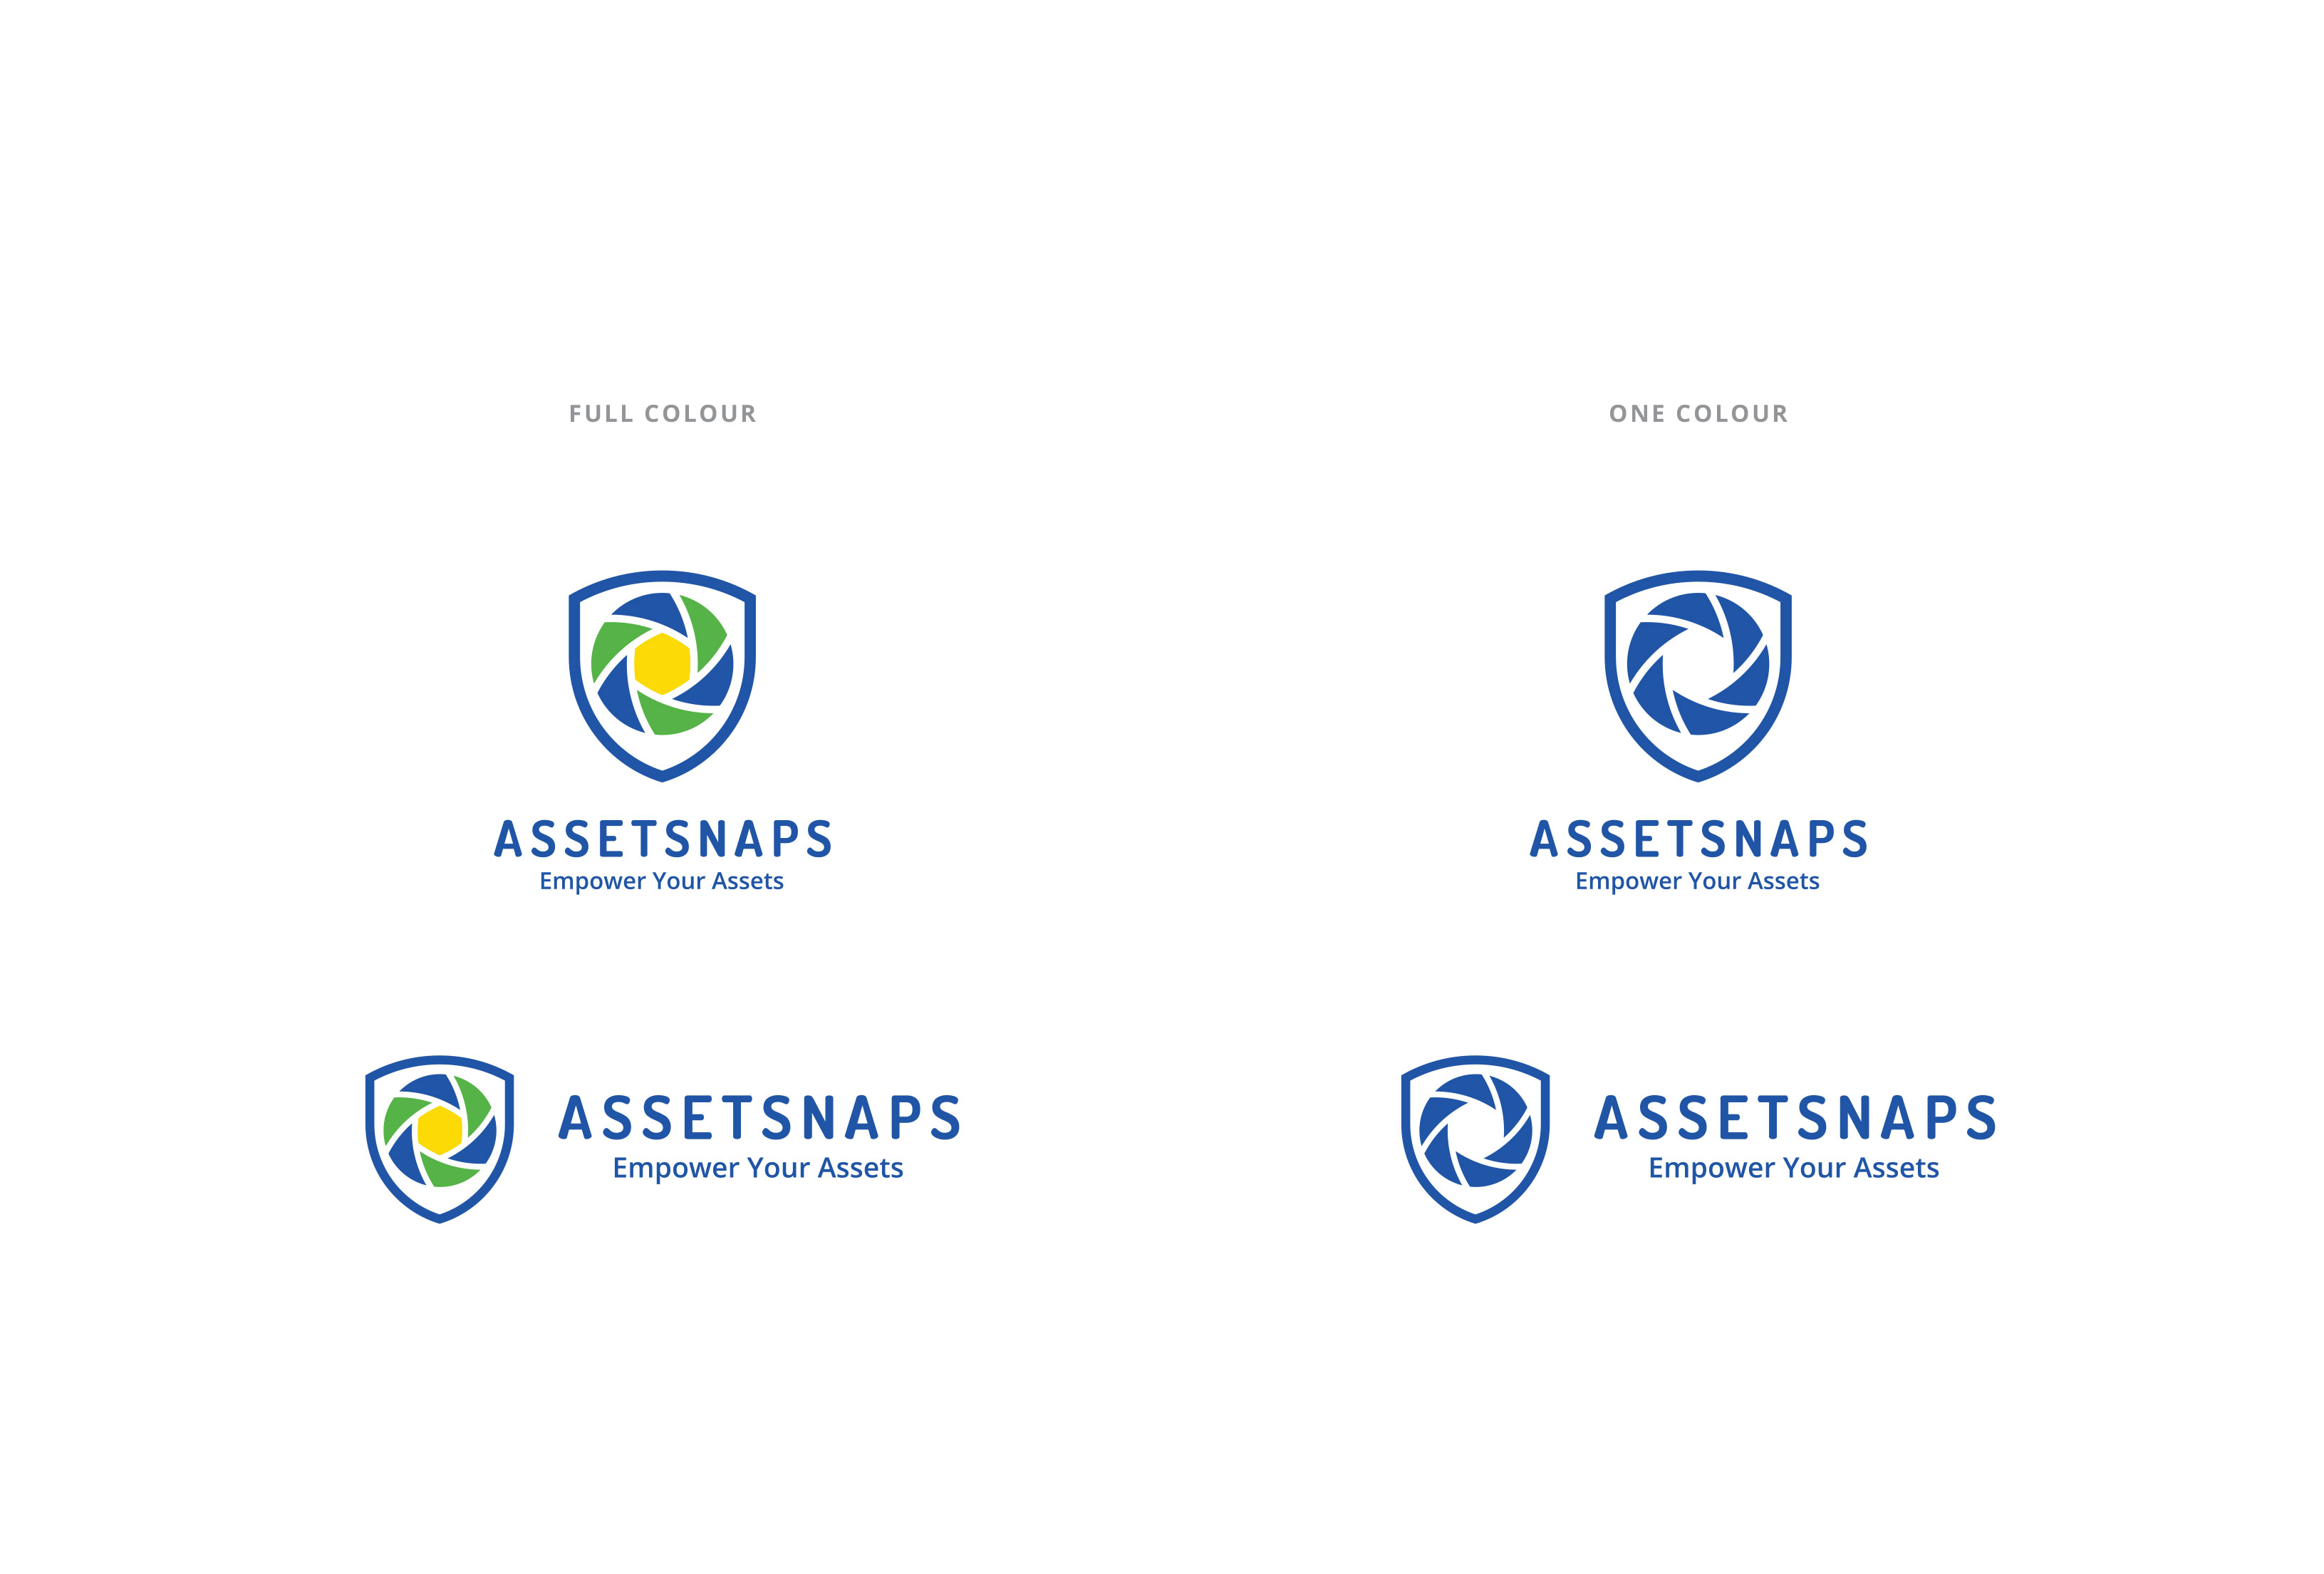 Asset Snaps - Full Colour (4C) and One Colour (1C)